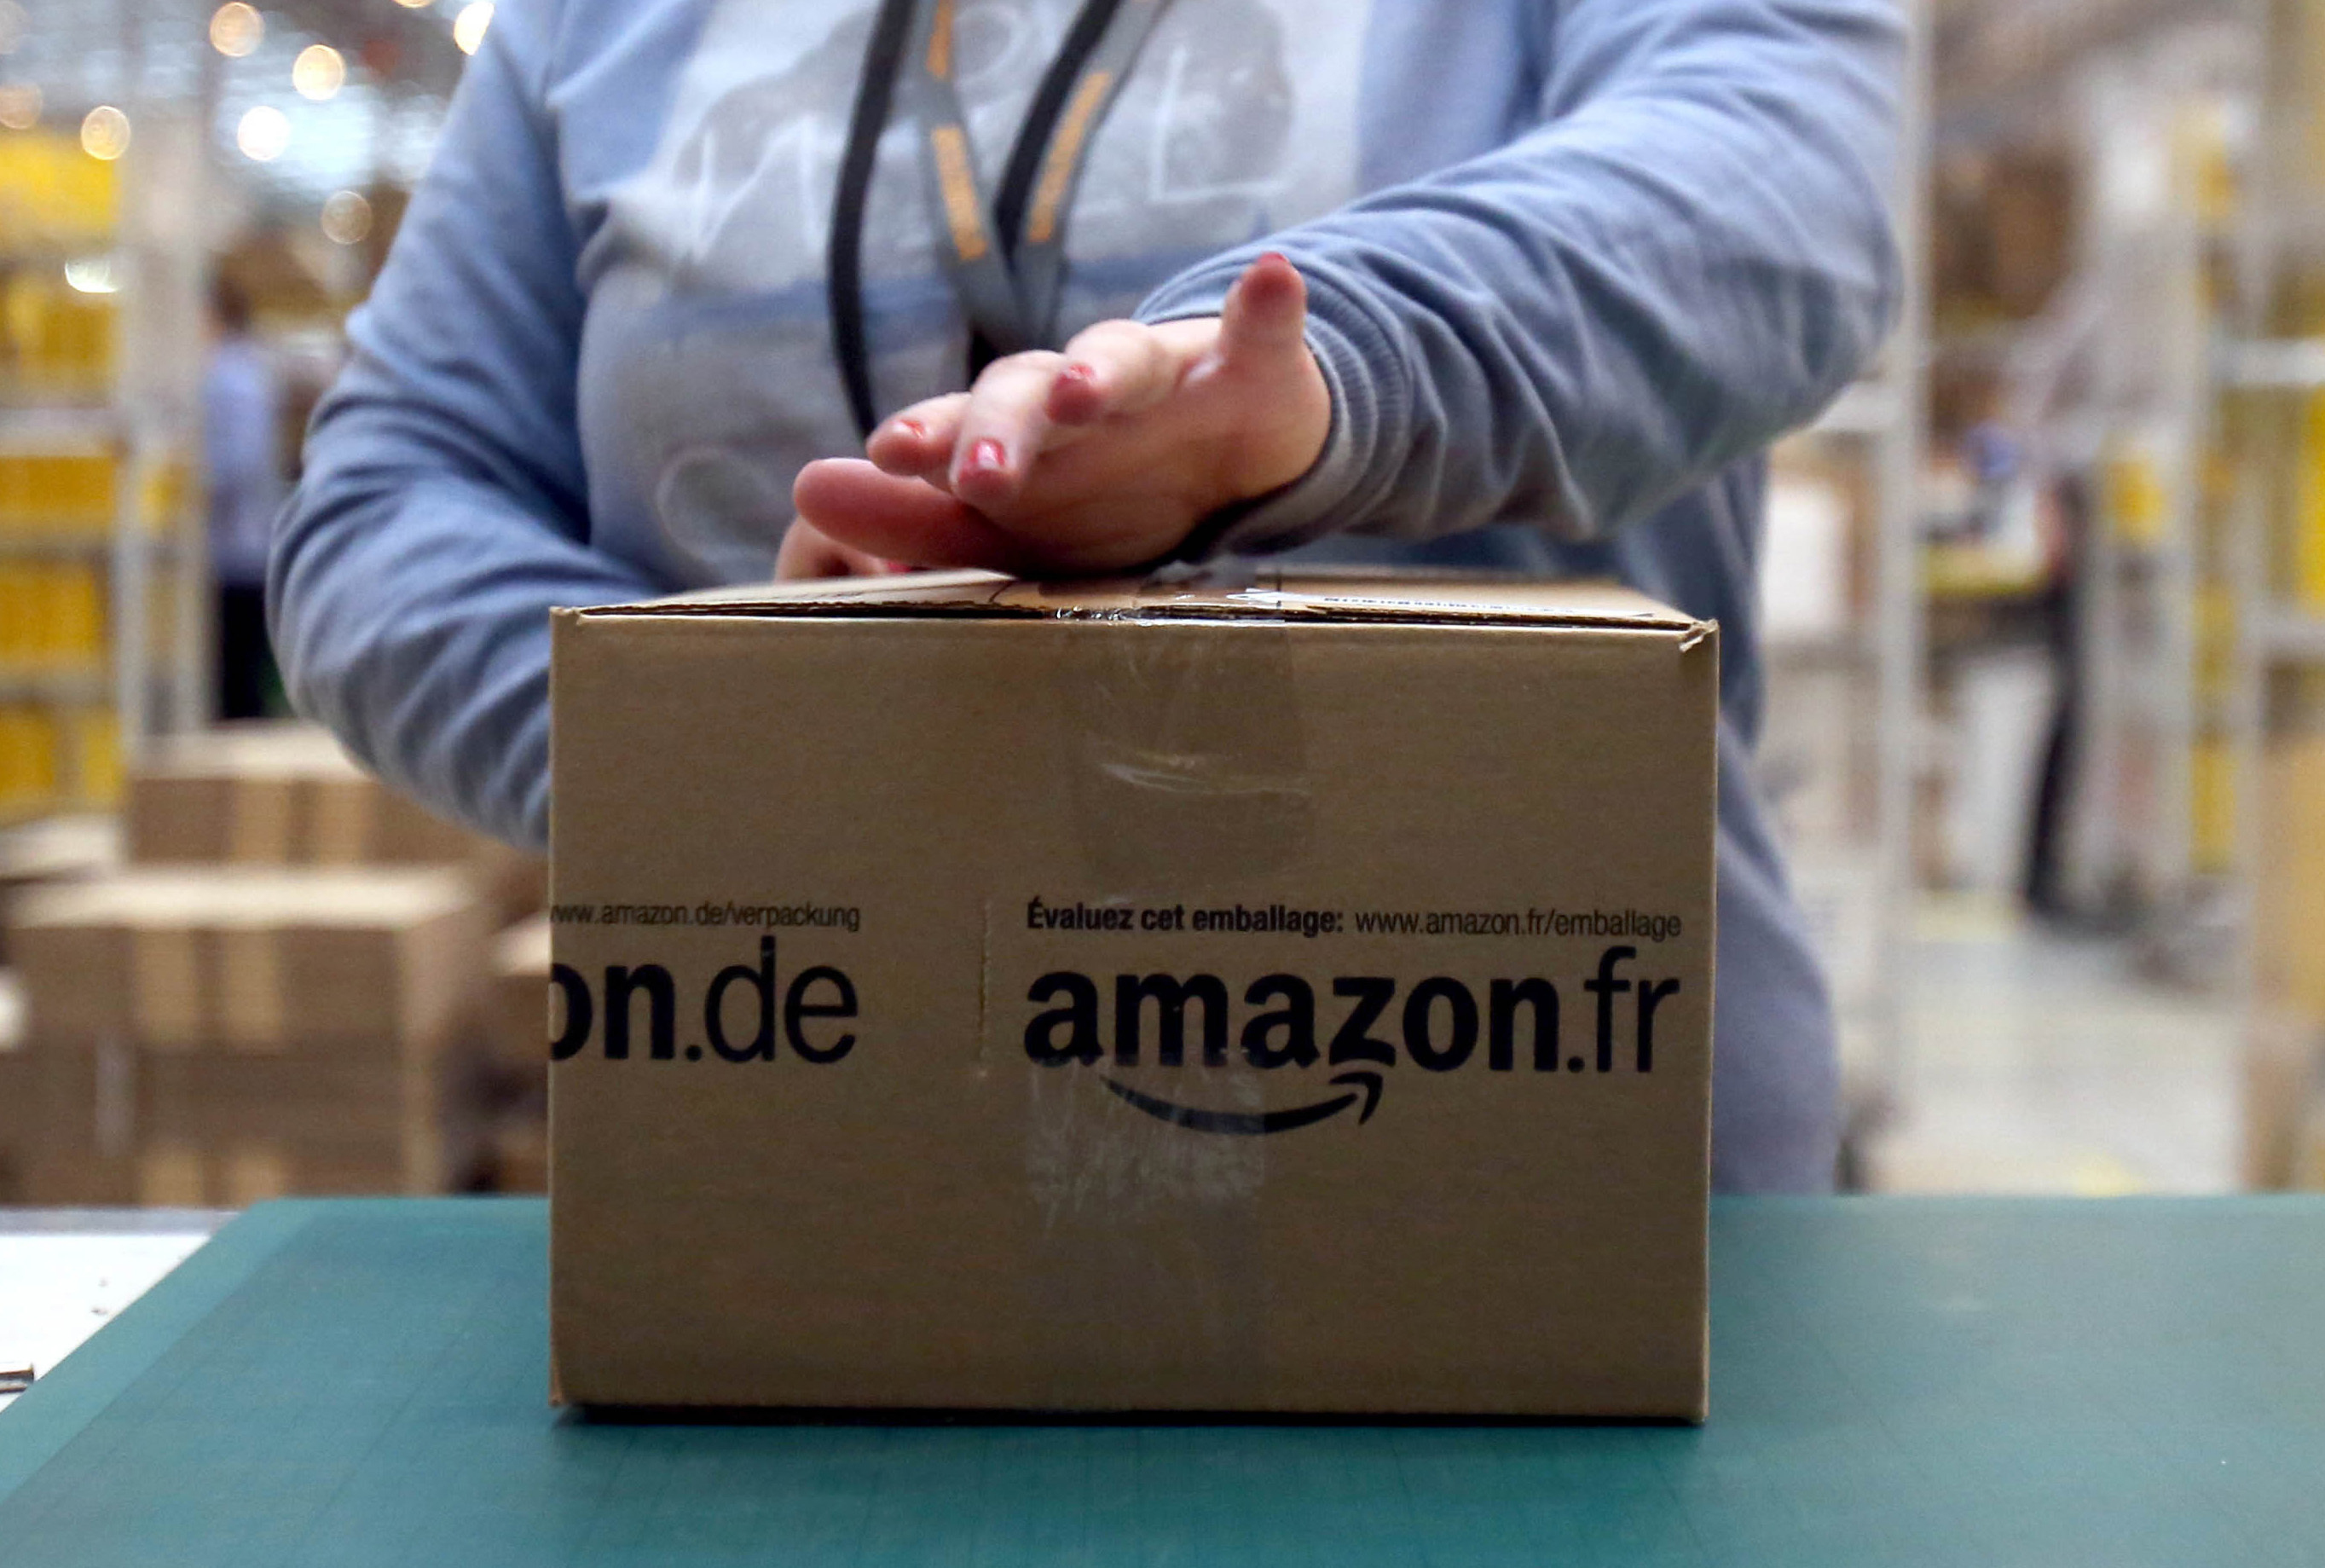 Amazon has said it is supporting the worker.